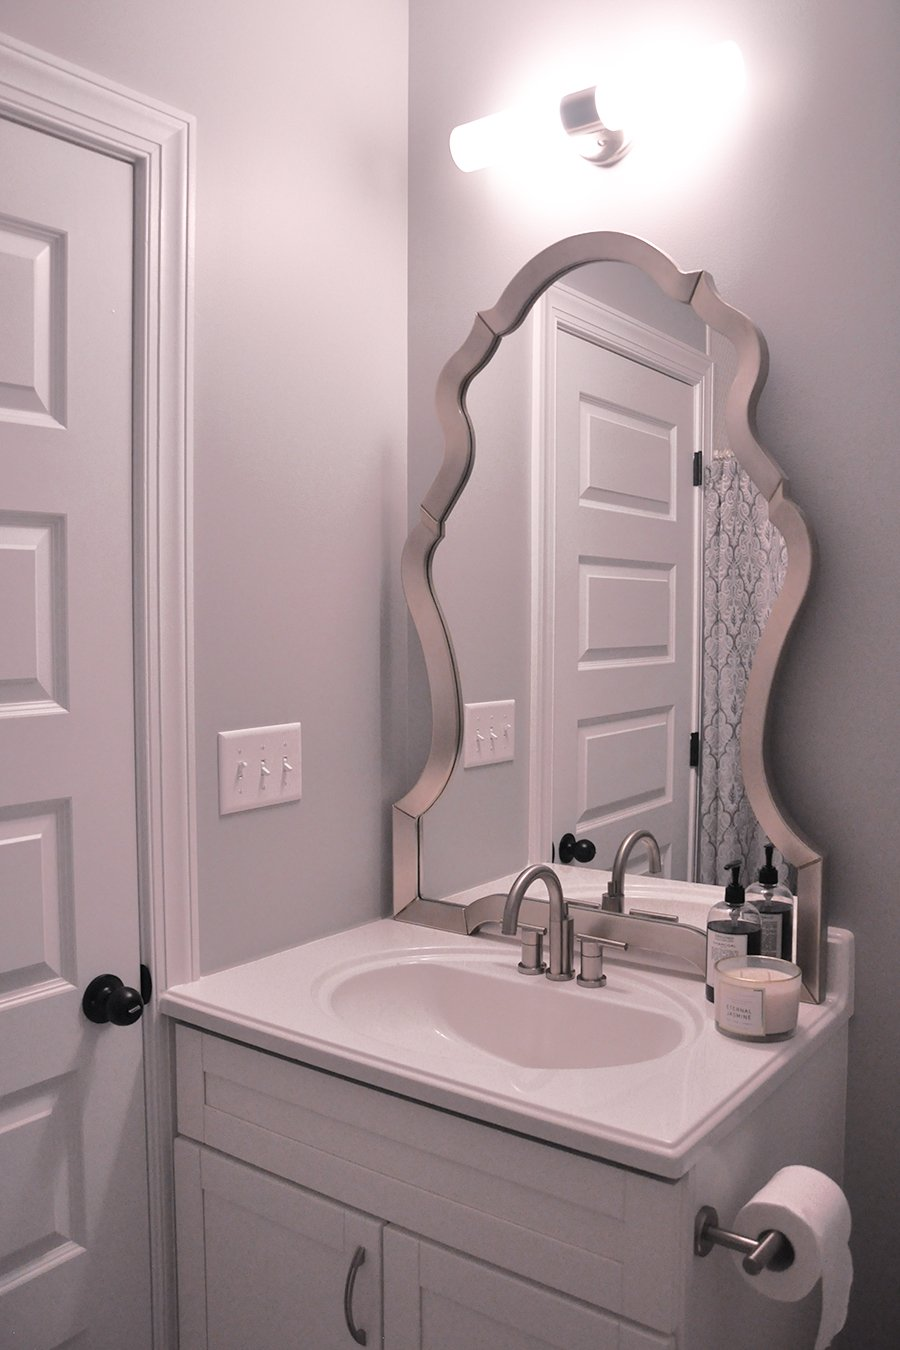 Create a Cozy and Inviting Guest Bathroom